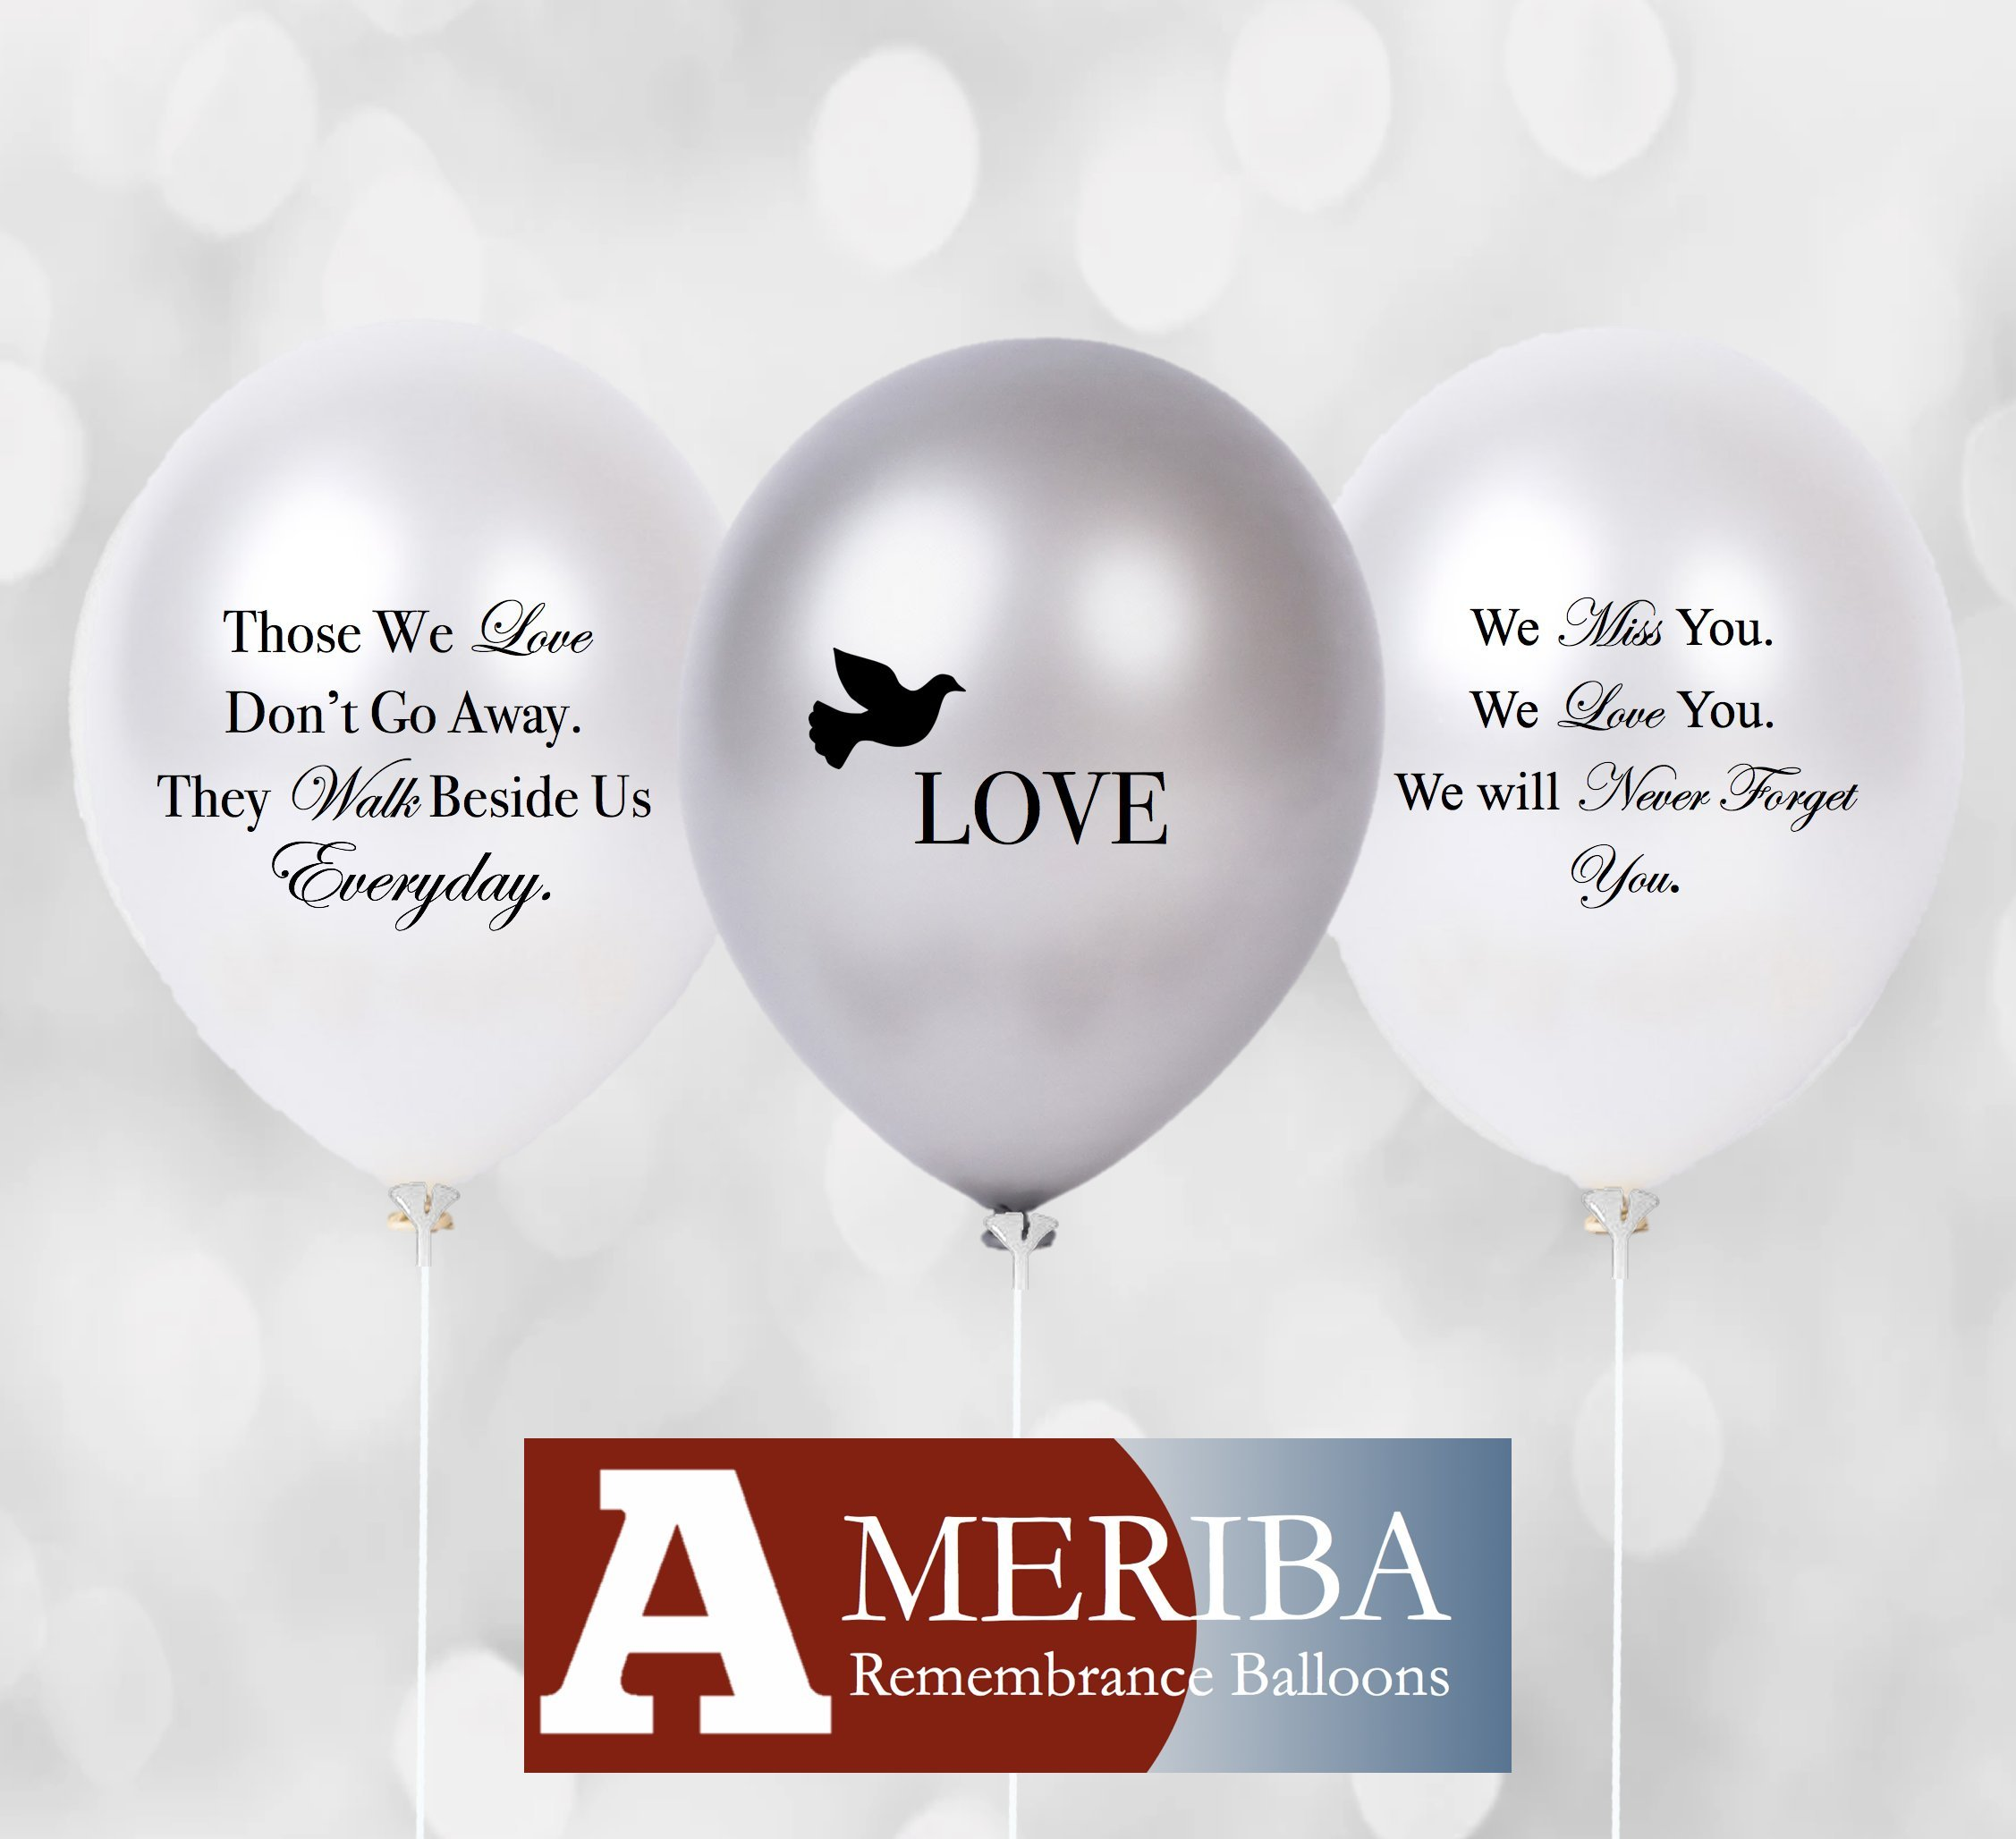 Biodegradable Remembrance Balloons: 30pc White & Silver Personalizable Funeral Balloons Plus 30 Balloon Holder Sets | Created/Sold by AMERIBA (Variety Pack, Black Writing with Sticks)